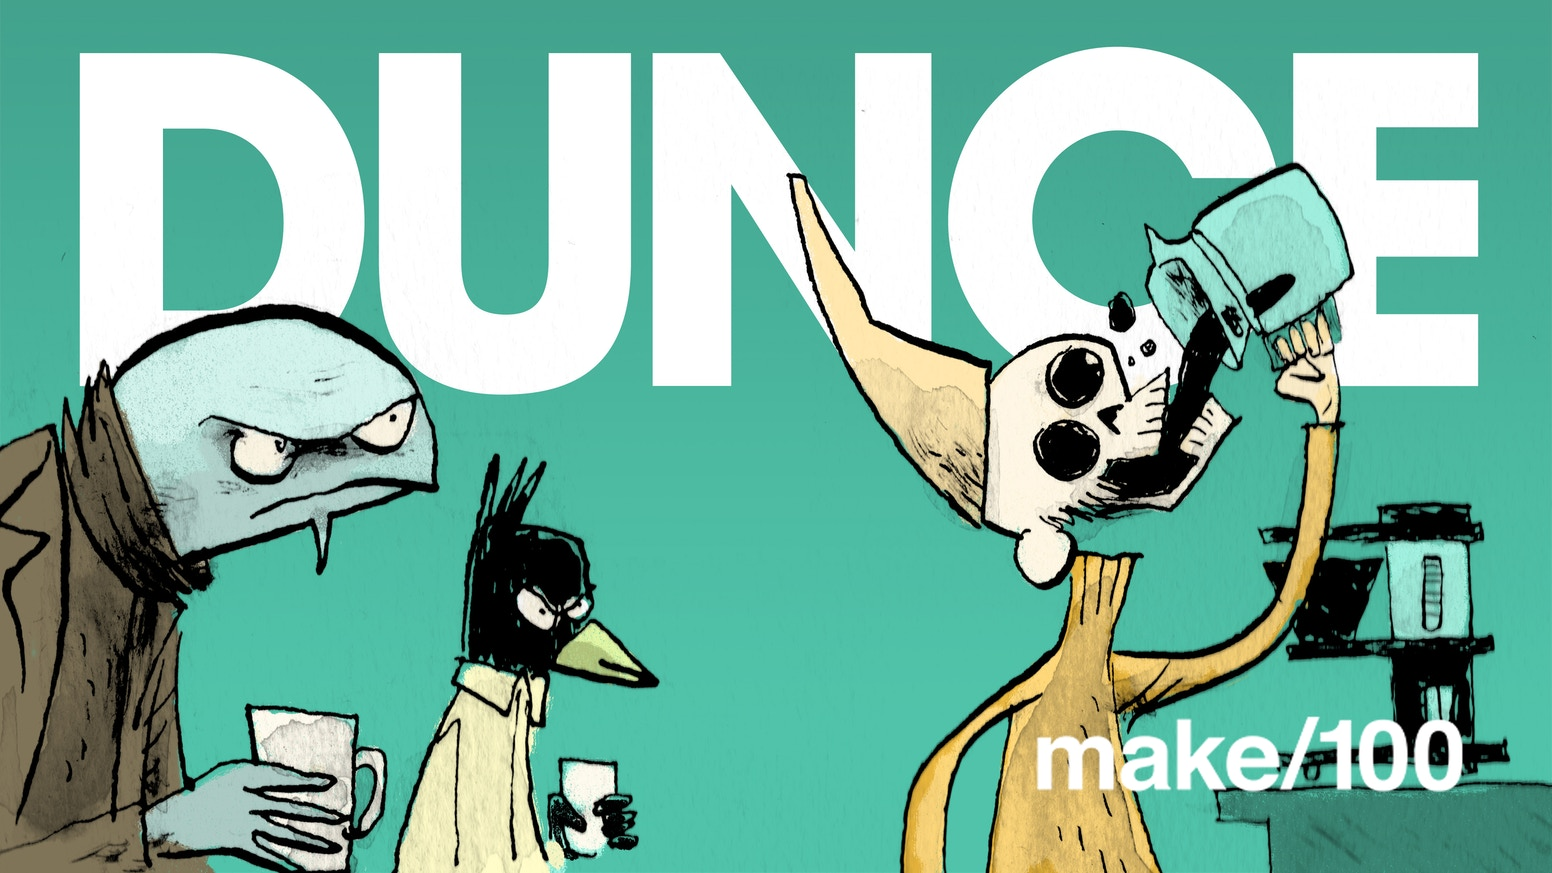 The very first issue of my new comic Dunce! Follow the creation and get the finished result in February/March.